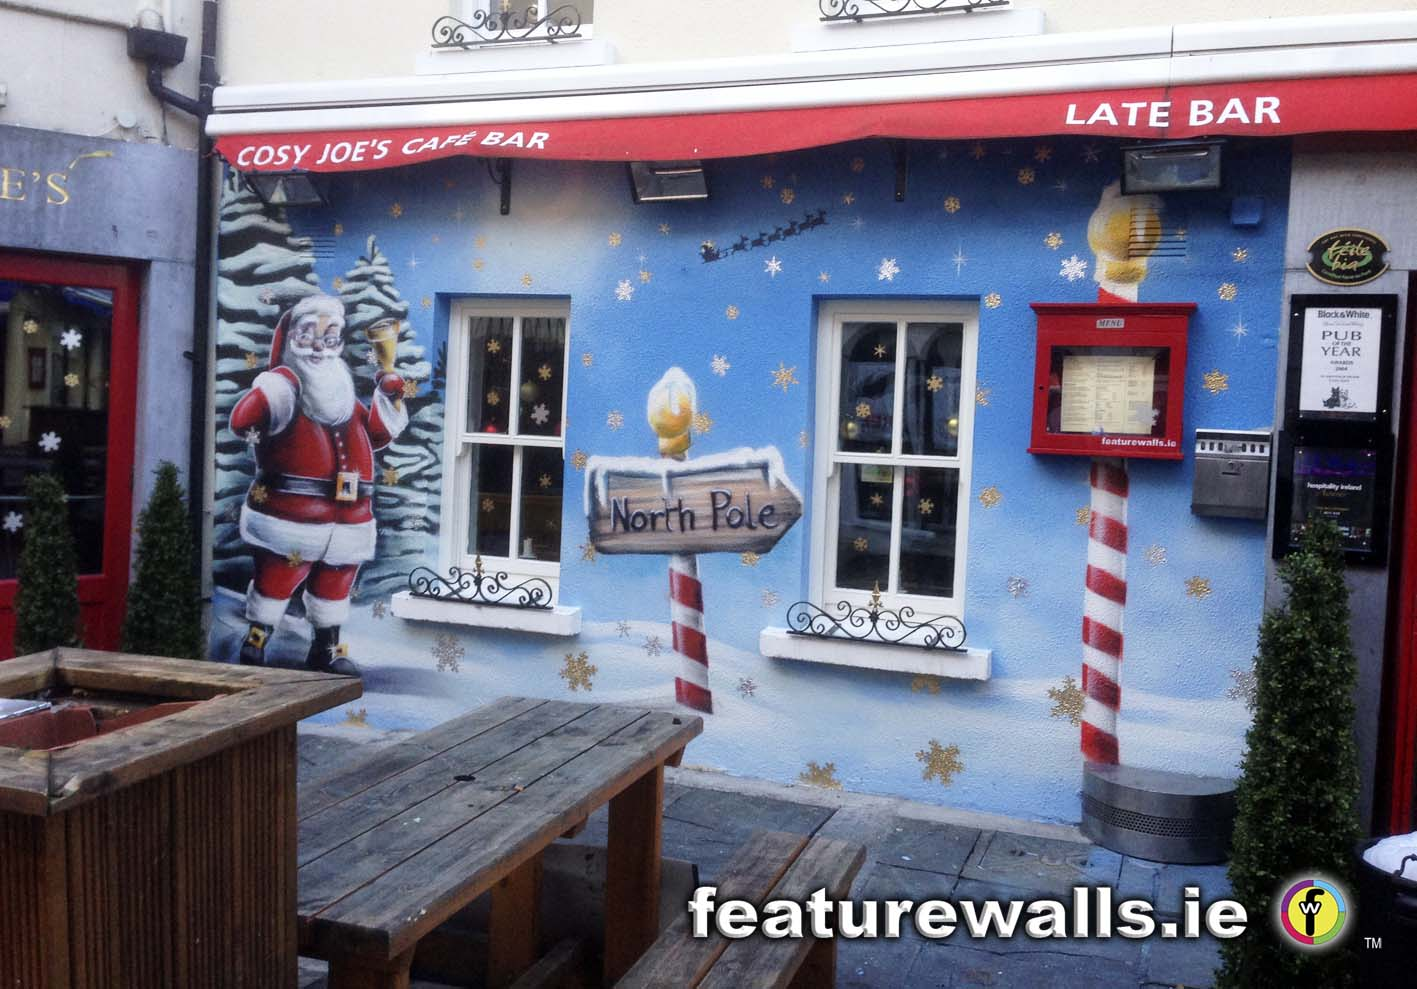 This is a very christmassy mural featurewalls ie hand painted